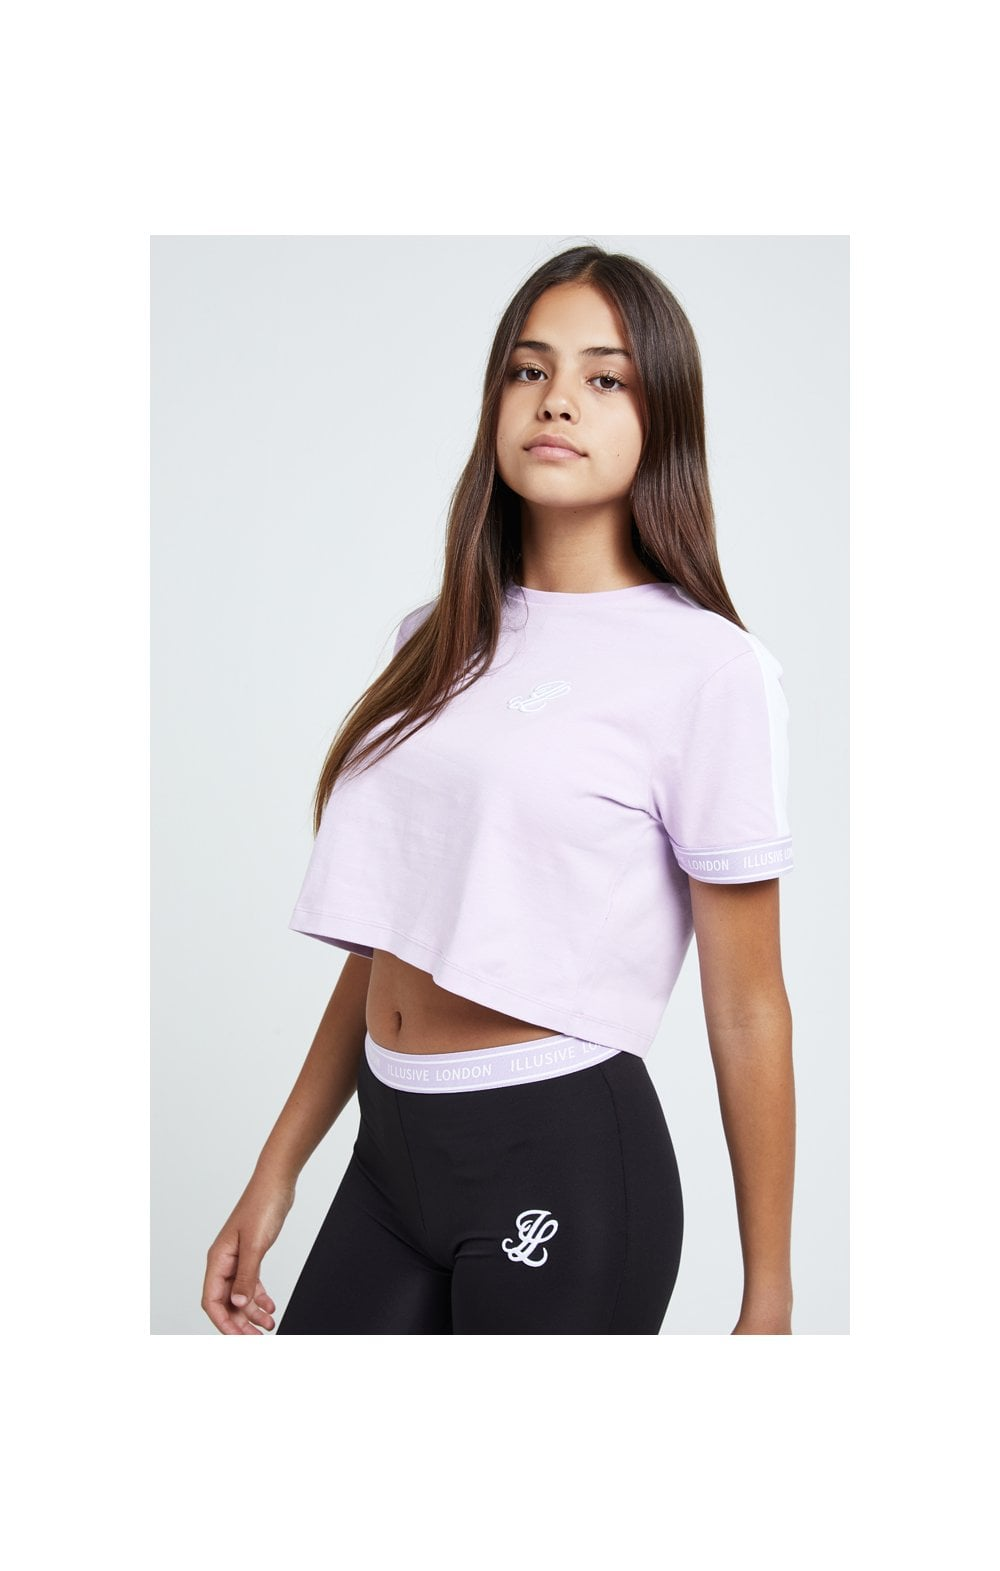 Illusive London Tape Cuff Crop Tee - Lilac